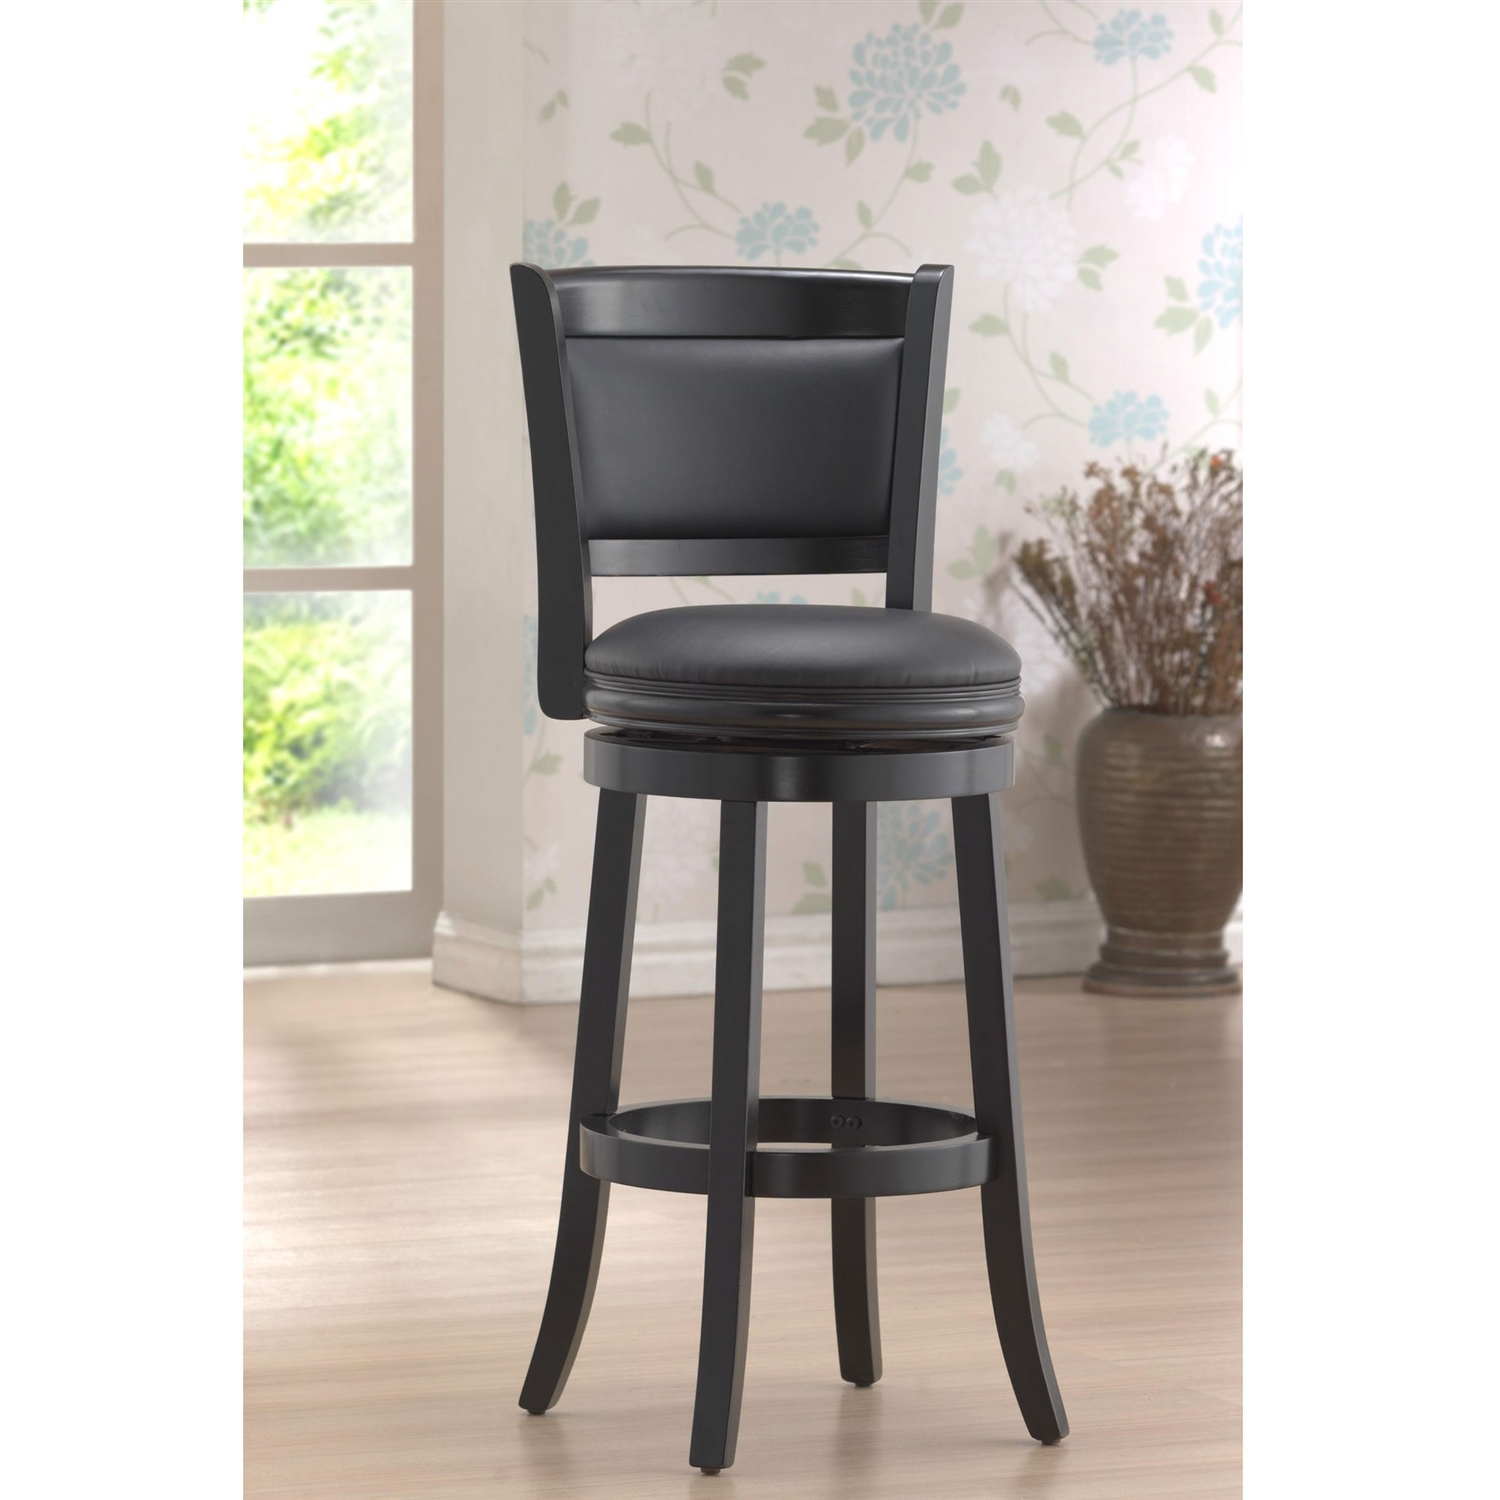 Accent your bar space with this classy and stylish Black 29-inch Swivel Seat Barstool with Faux Leather Cushion Seat. Its attractive and durable design is a perfect fit for all decor settings. It occupies less space and proves highly useful when you have guests at home.This stool has a solid hardwood construction that ensures it lasts for many years to come. The lustrous finish lends it a timeless look and adds to the appeal. It is fitted with a rich faux leather seat with high density foam to offer comfortable seating and enhance its appearance. It has flawlessly crafted French style legs with tempered bottoms. The steel ball bearings keeps it steady. The swivel ensures unrestricted movement. While the full ring footrest lends more strength and stability. The back support makes the seating experience more relaxed.The bar stool has a weight capacity of 250lbs. Its seat height is 29''. The overall dimensions of the bar stool are 43.5'' in height, 17'' in width and 18'' in depth. It is available in different shades to best suit your decor. This stool is best paired with an elegant bar table to complete the sophisticated look of your decor.